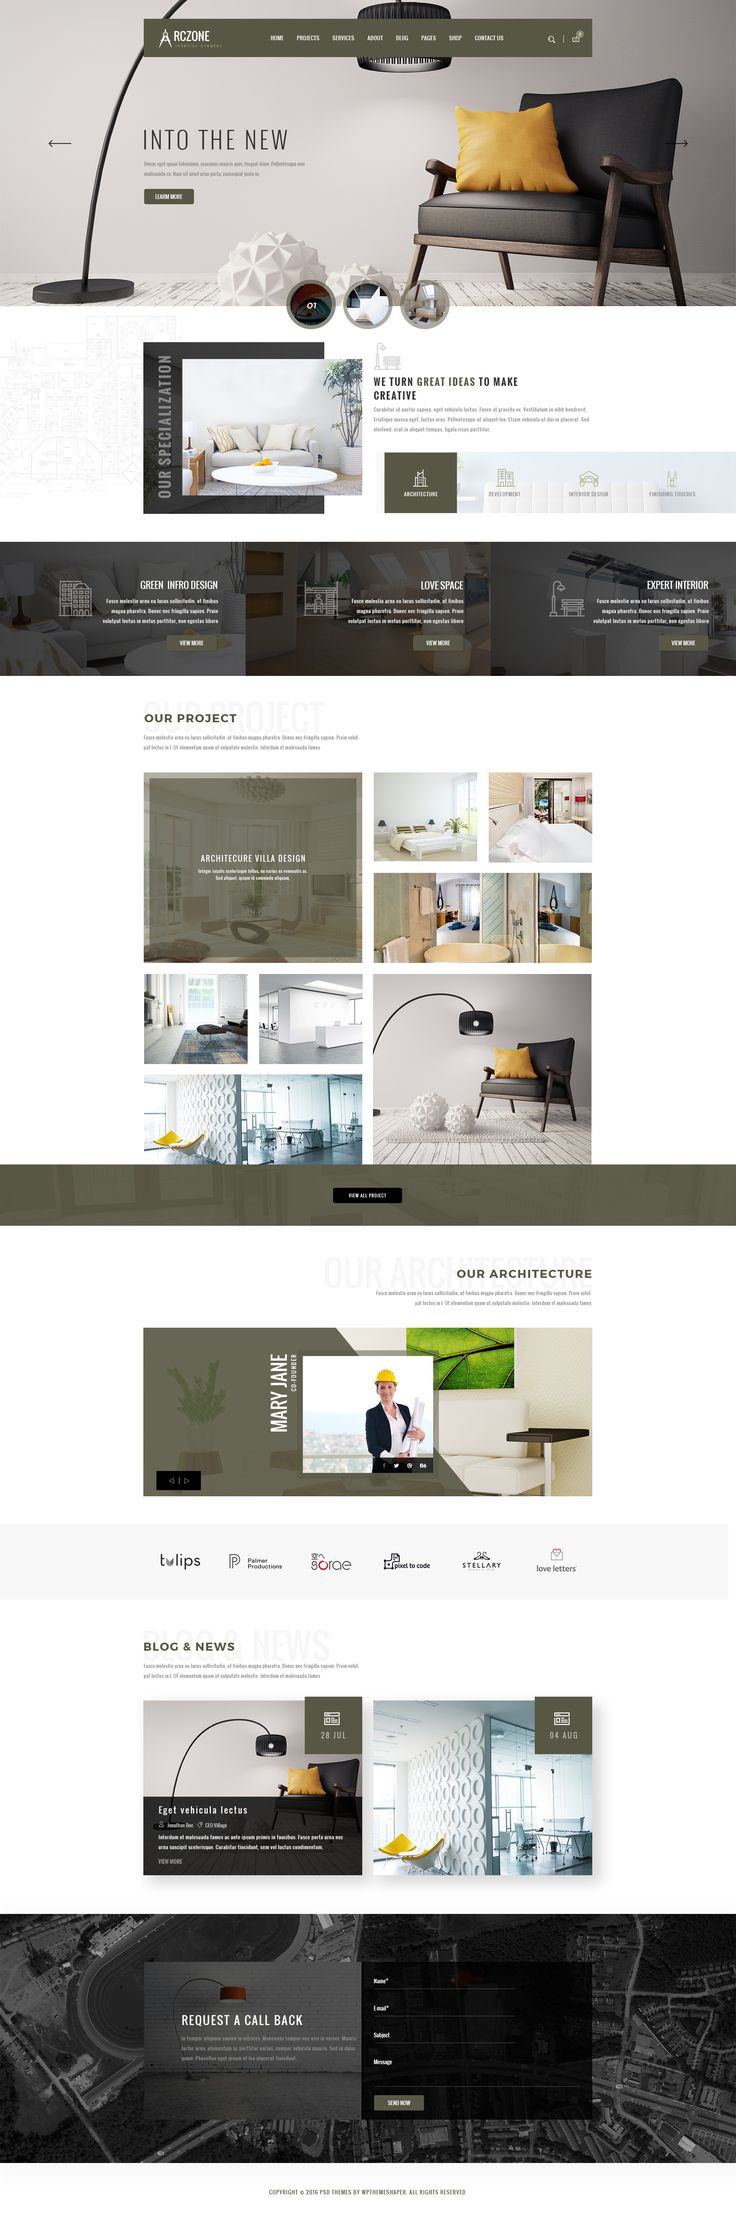 ARCZONE- Interior Design, Decor, Architecture Business Template. by wpthemeshaper